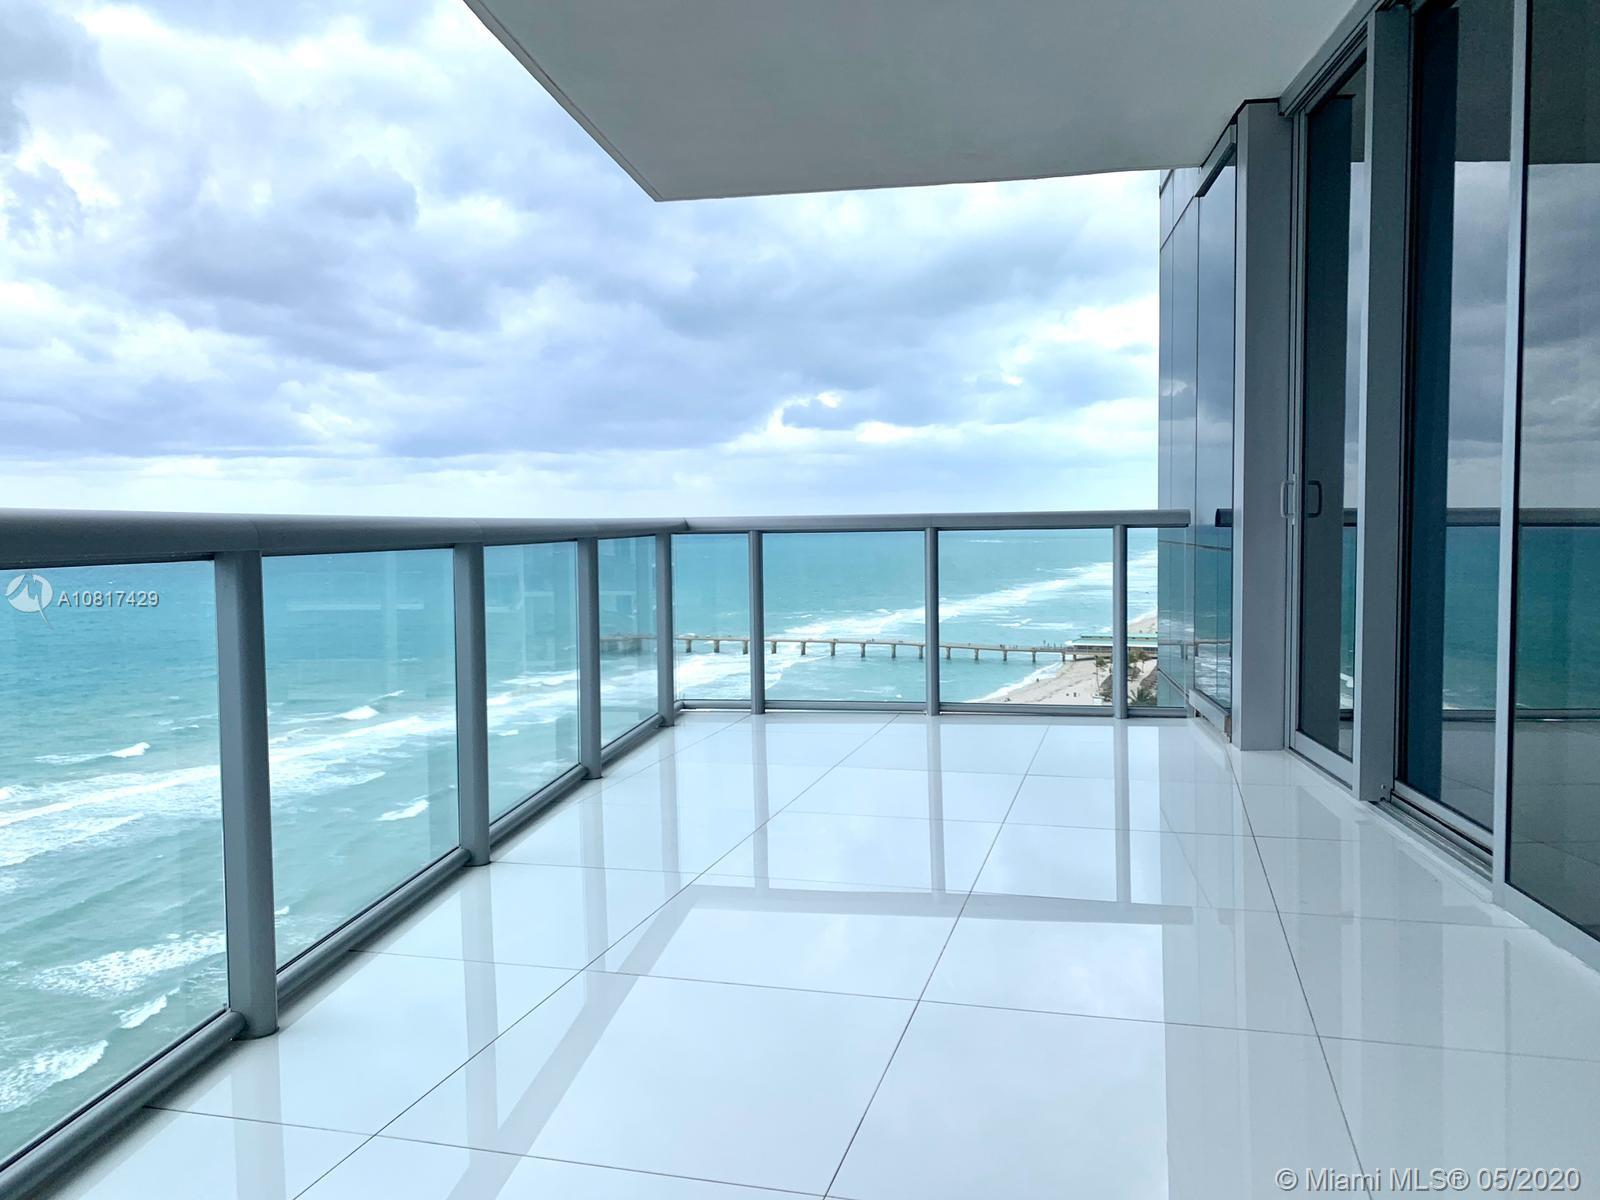 17121  Collins Ave #1802 For Sale A10817429, FL